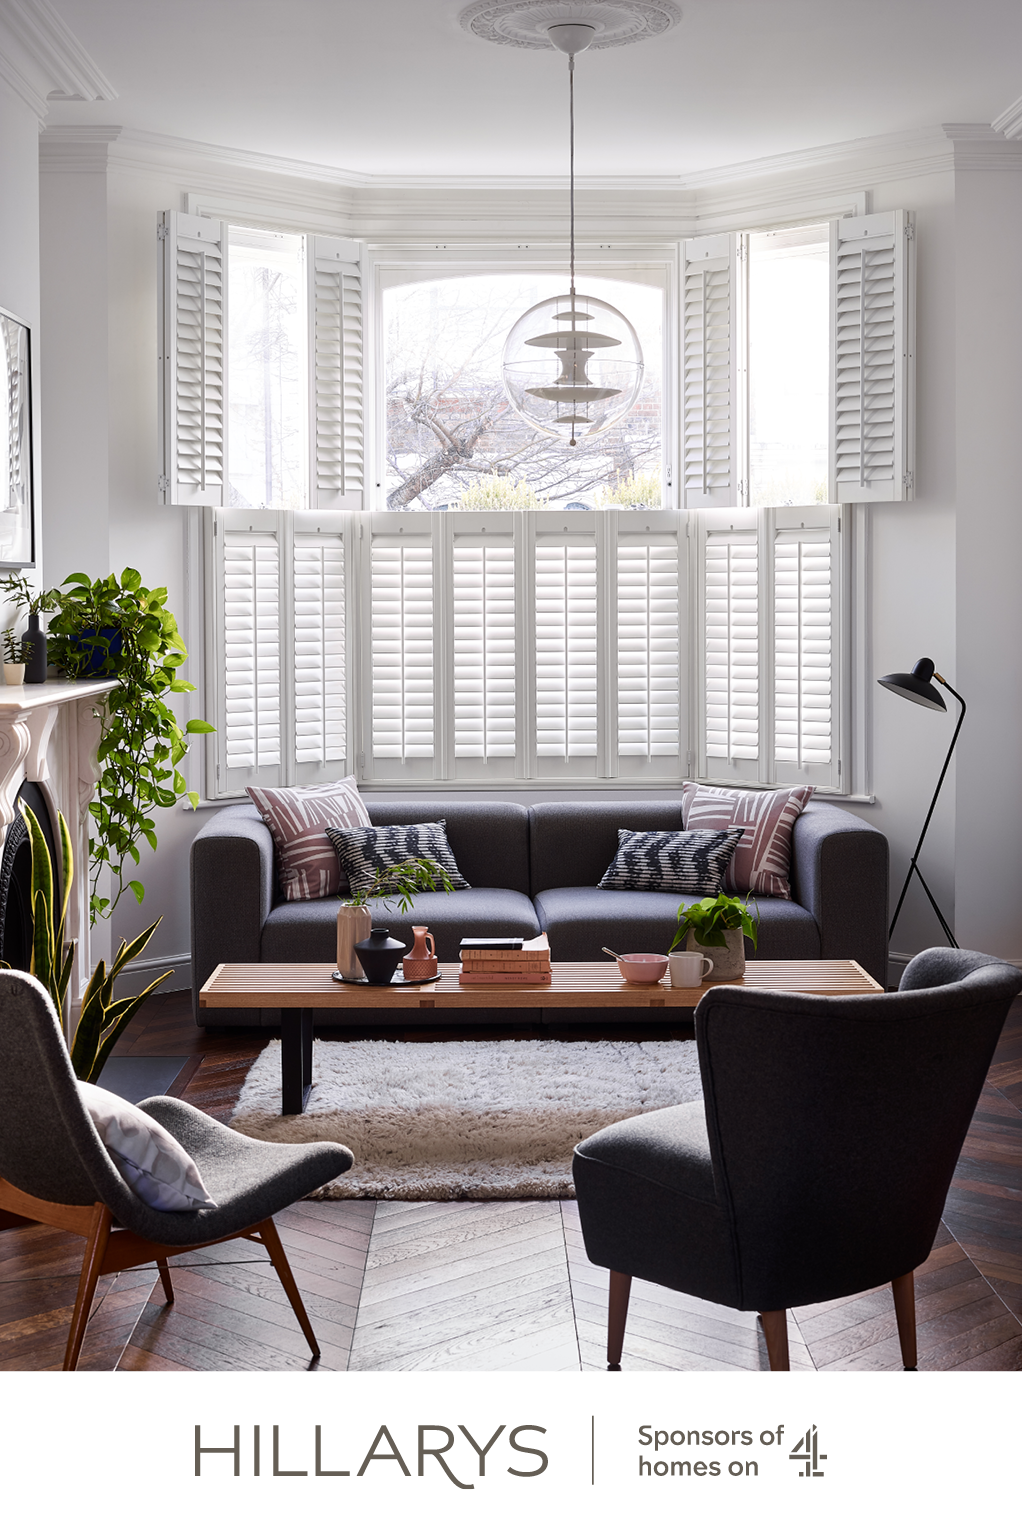 Of course classic white shutters will always be in vogue